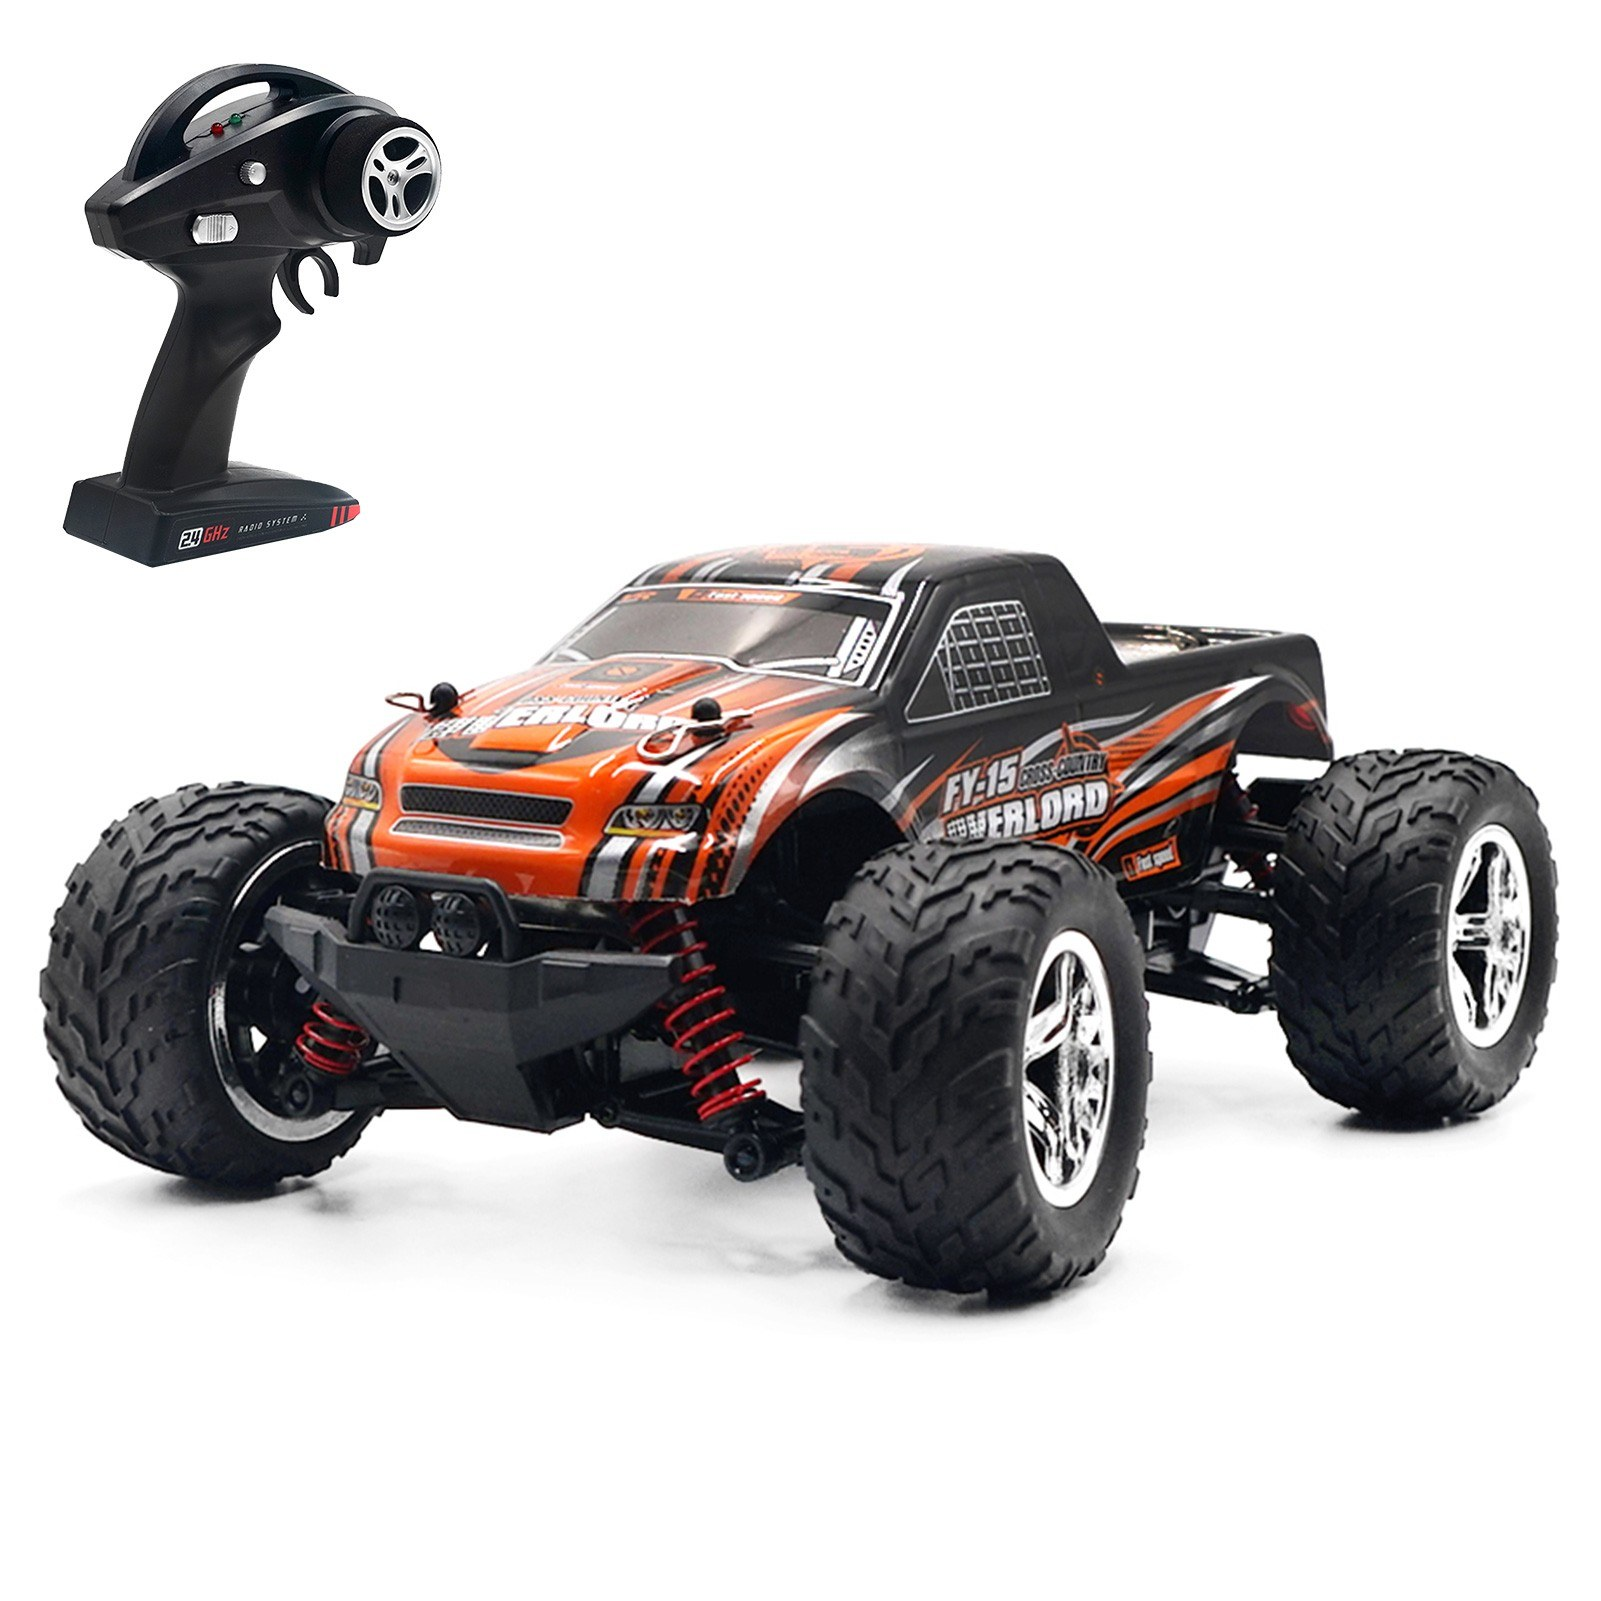 tomtop.com - 53% OFF JJRC Q121 2.4Ghz 20KM/H 1:20 Off Road RC Trucks, Limited Offers $63.99